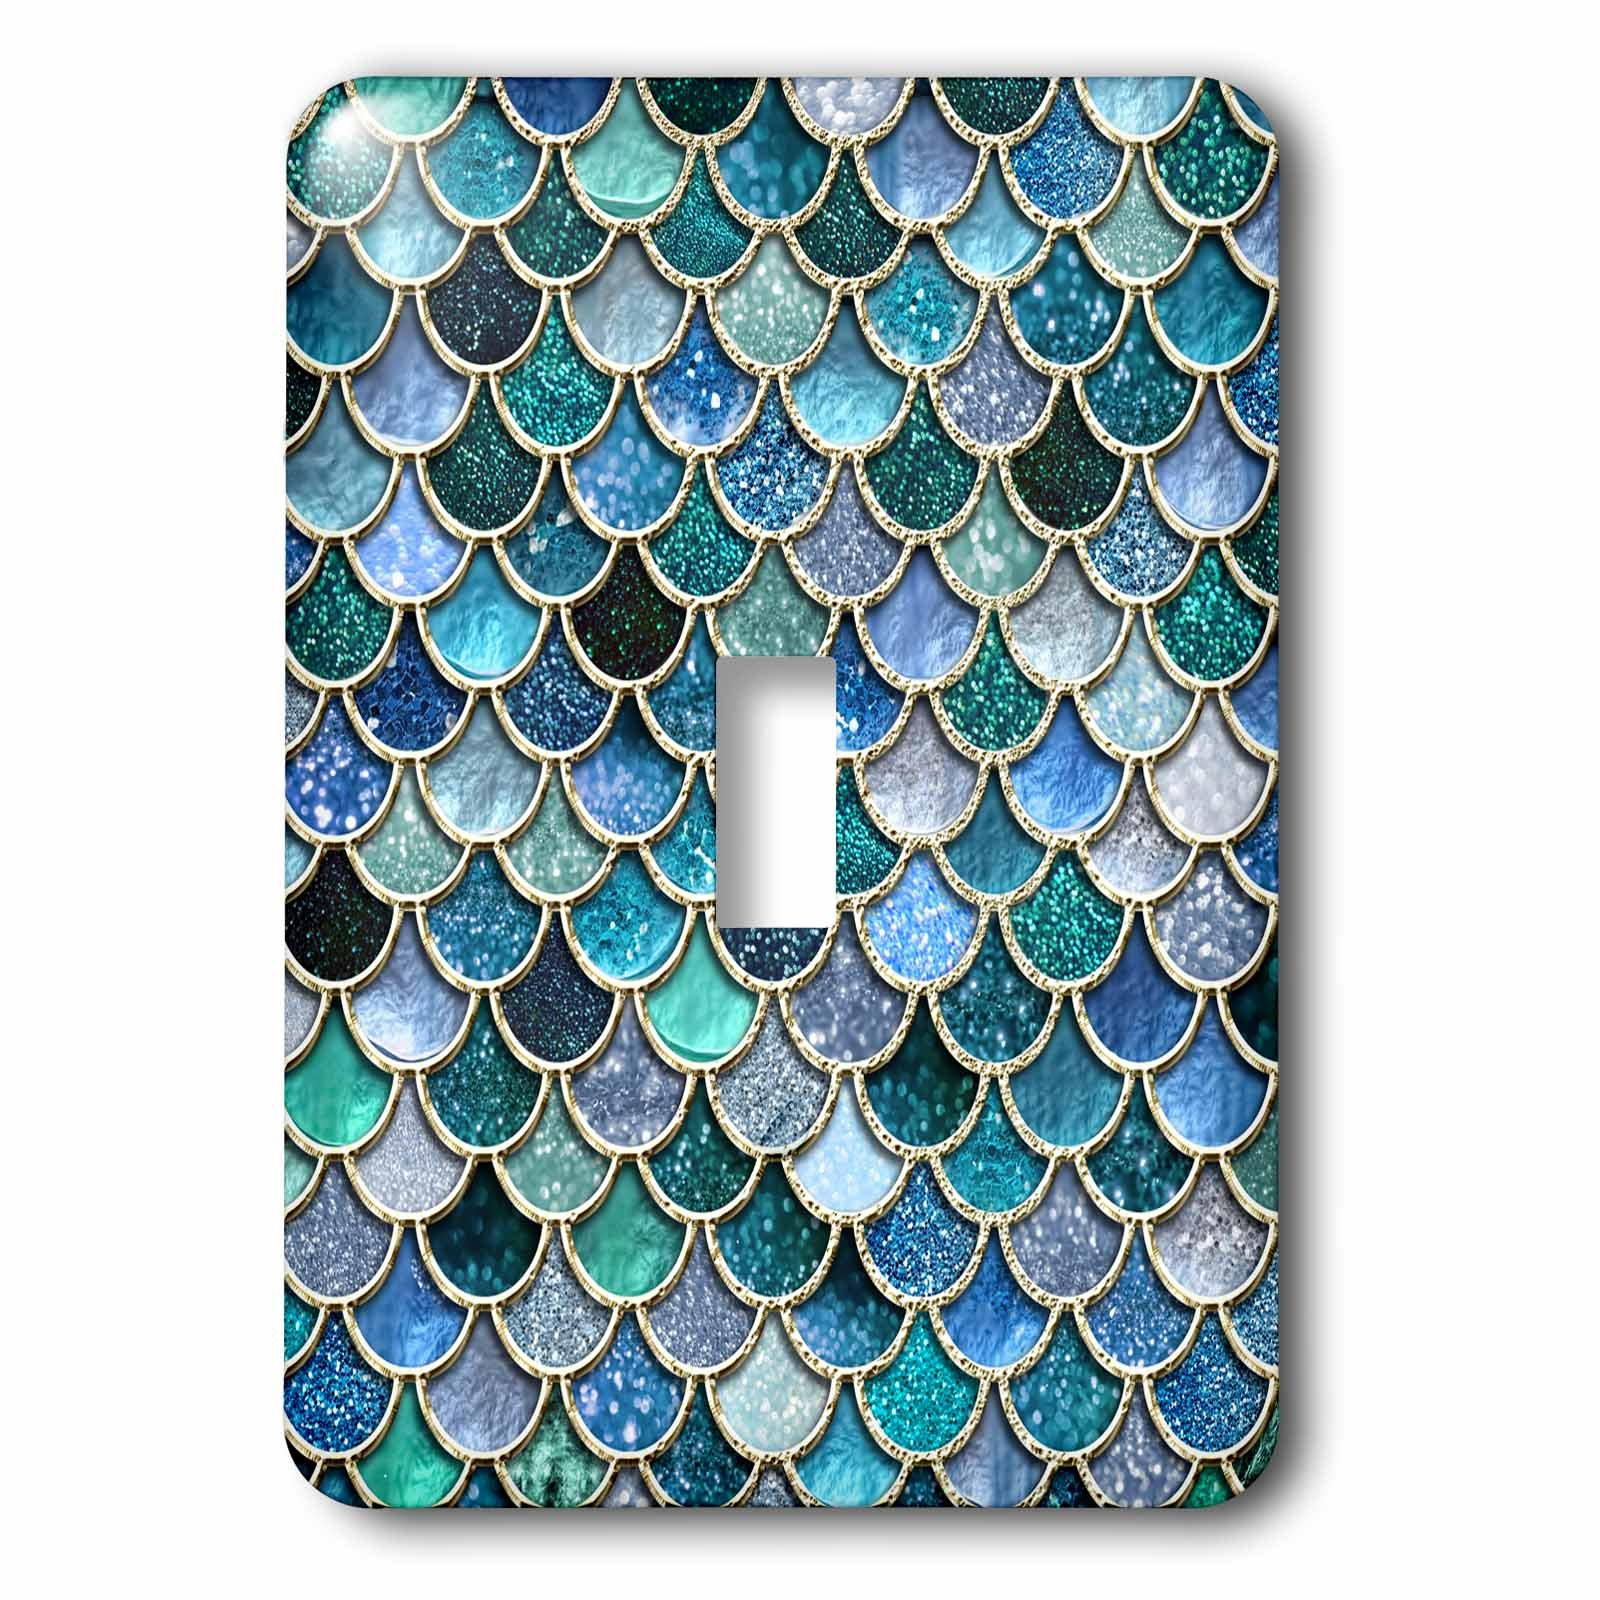 3dRose lsp_272862_1 Multicolor Trend Blue Luxury Elegant Mermaid Scales Glitter Toggle Switch, Mixed by 3dRose (Image #1)